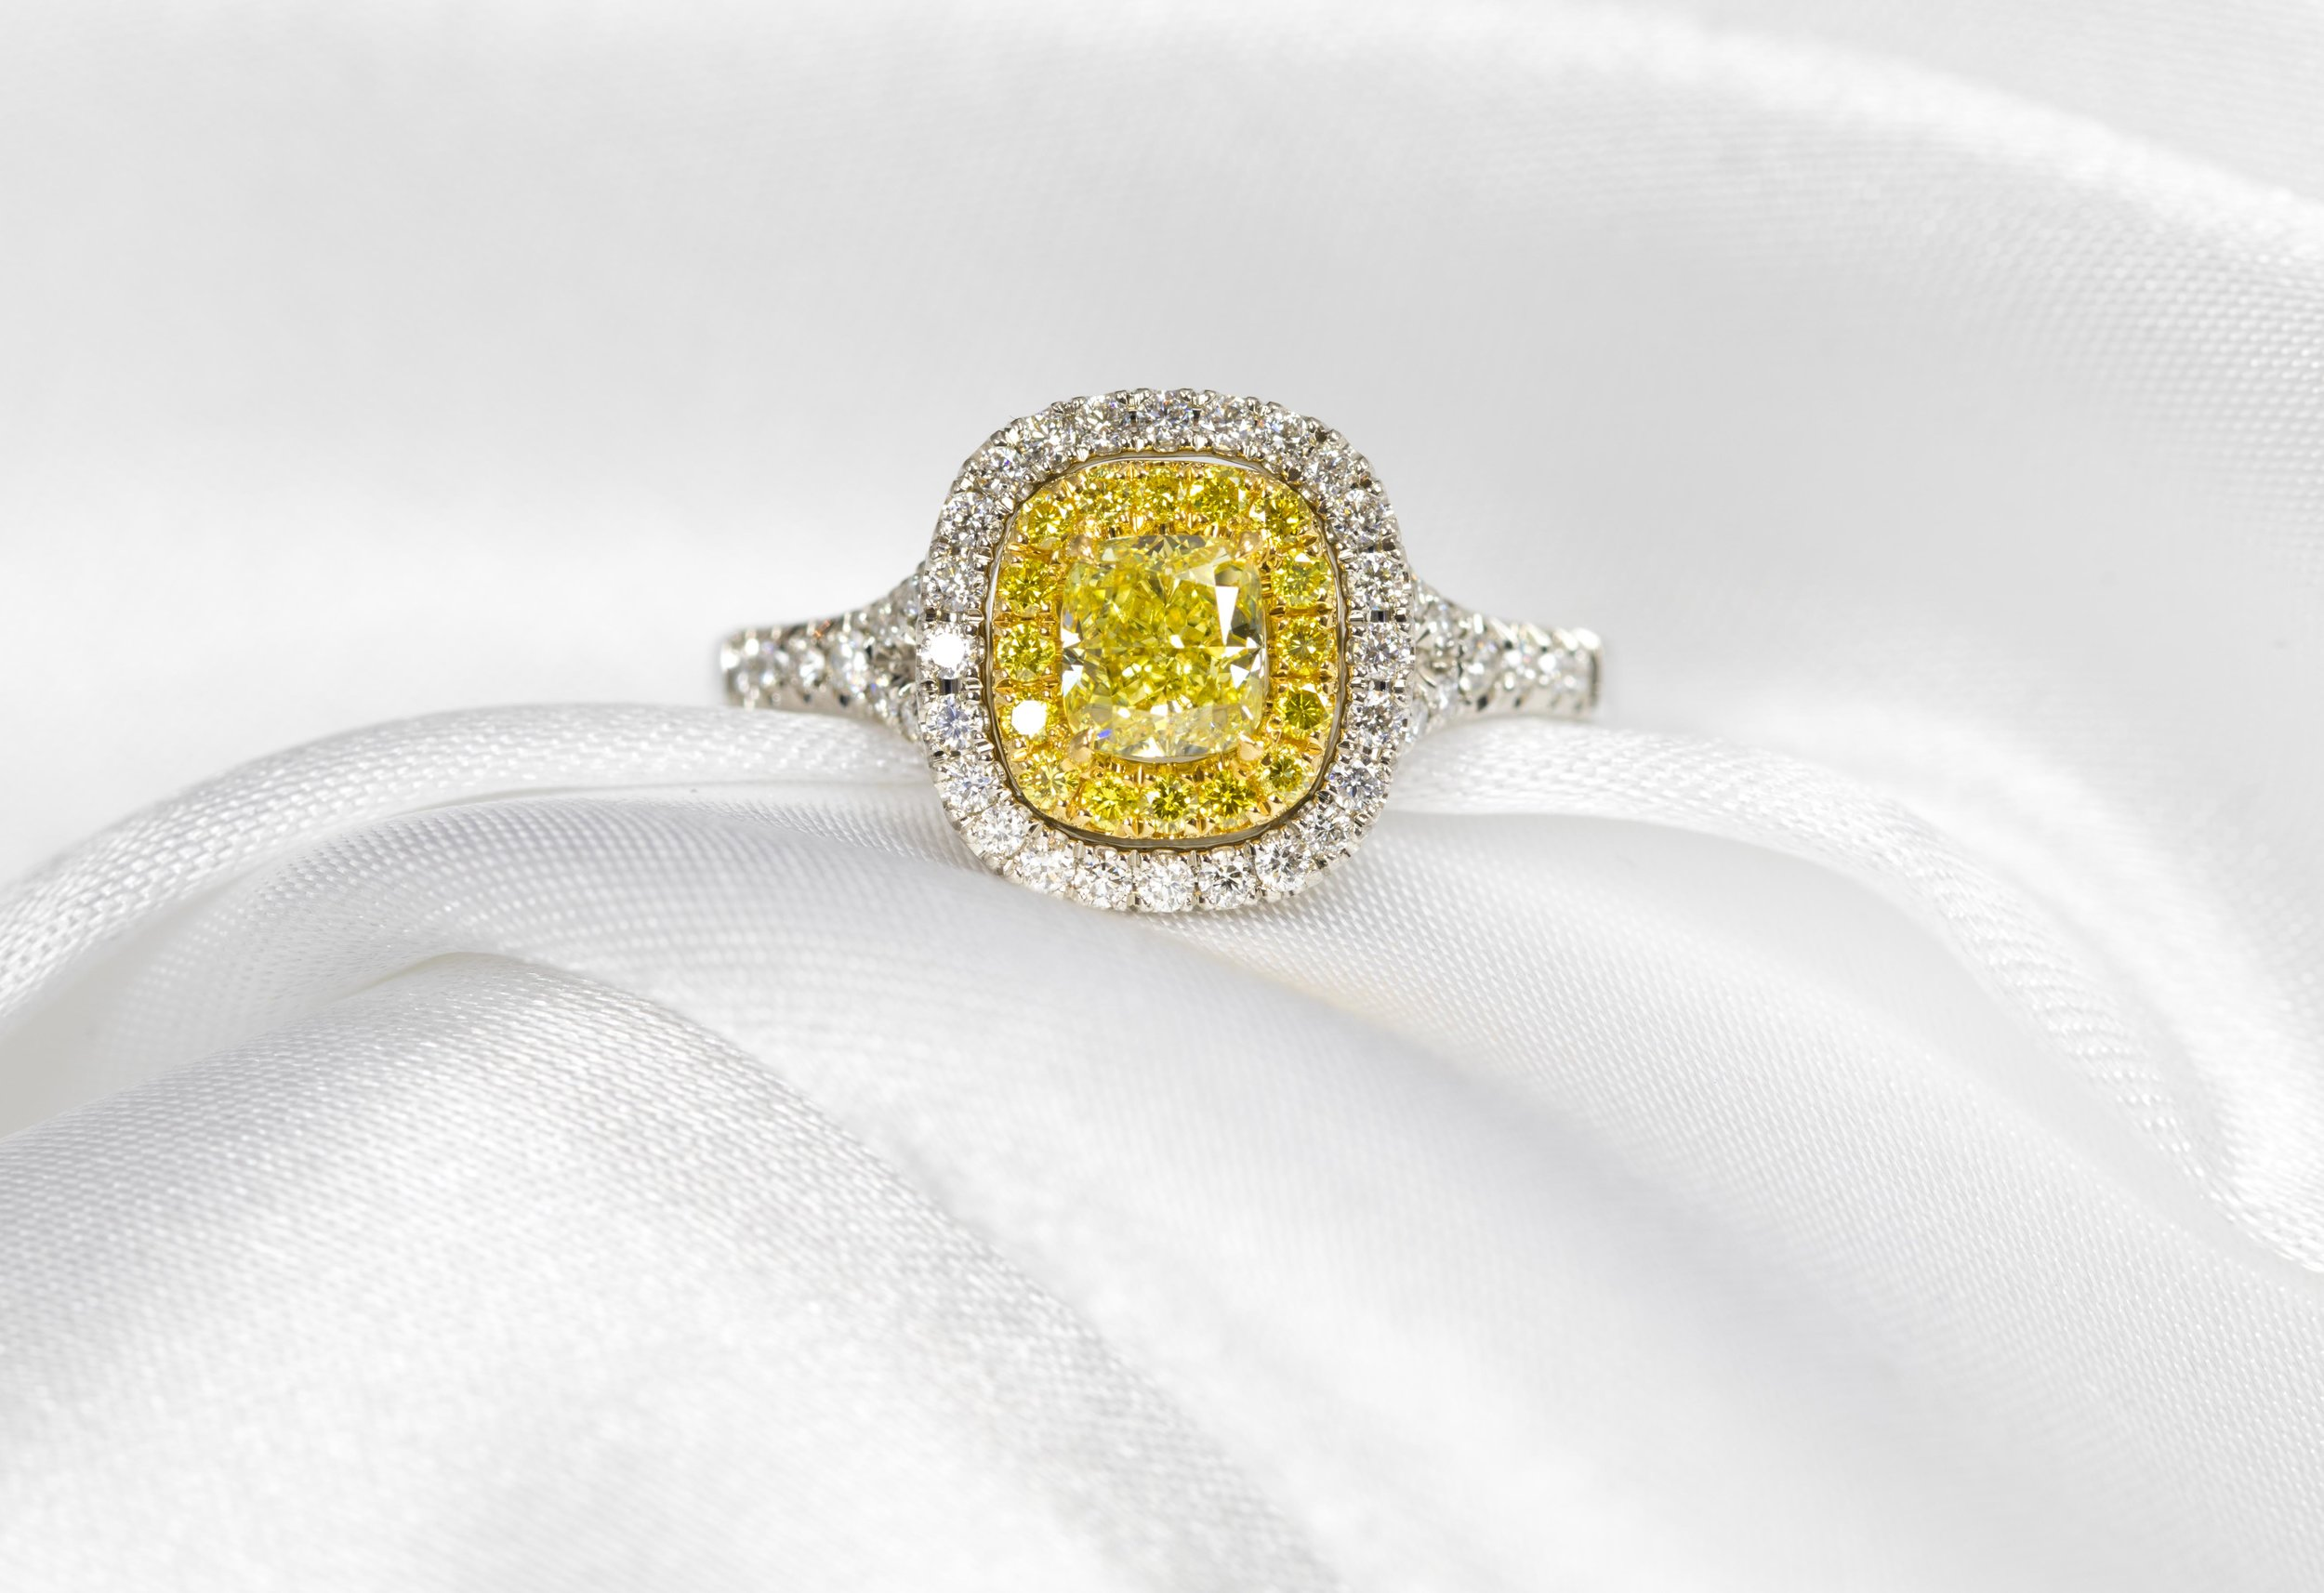 Platinum mounted diamond and natural yellow diamond cushion-shaped cluster ring. Made in Chichester, England.